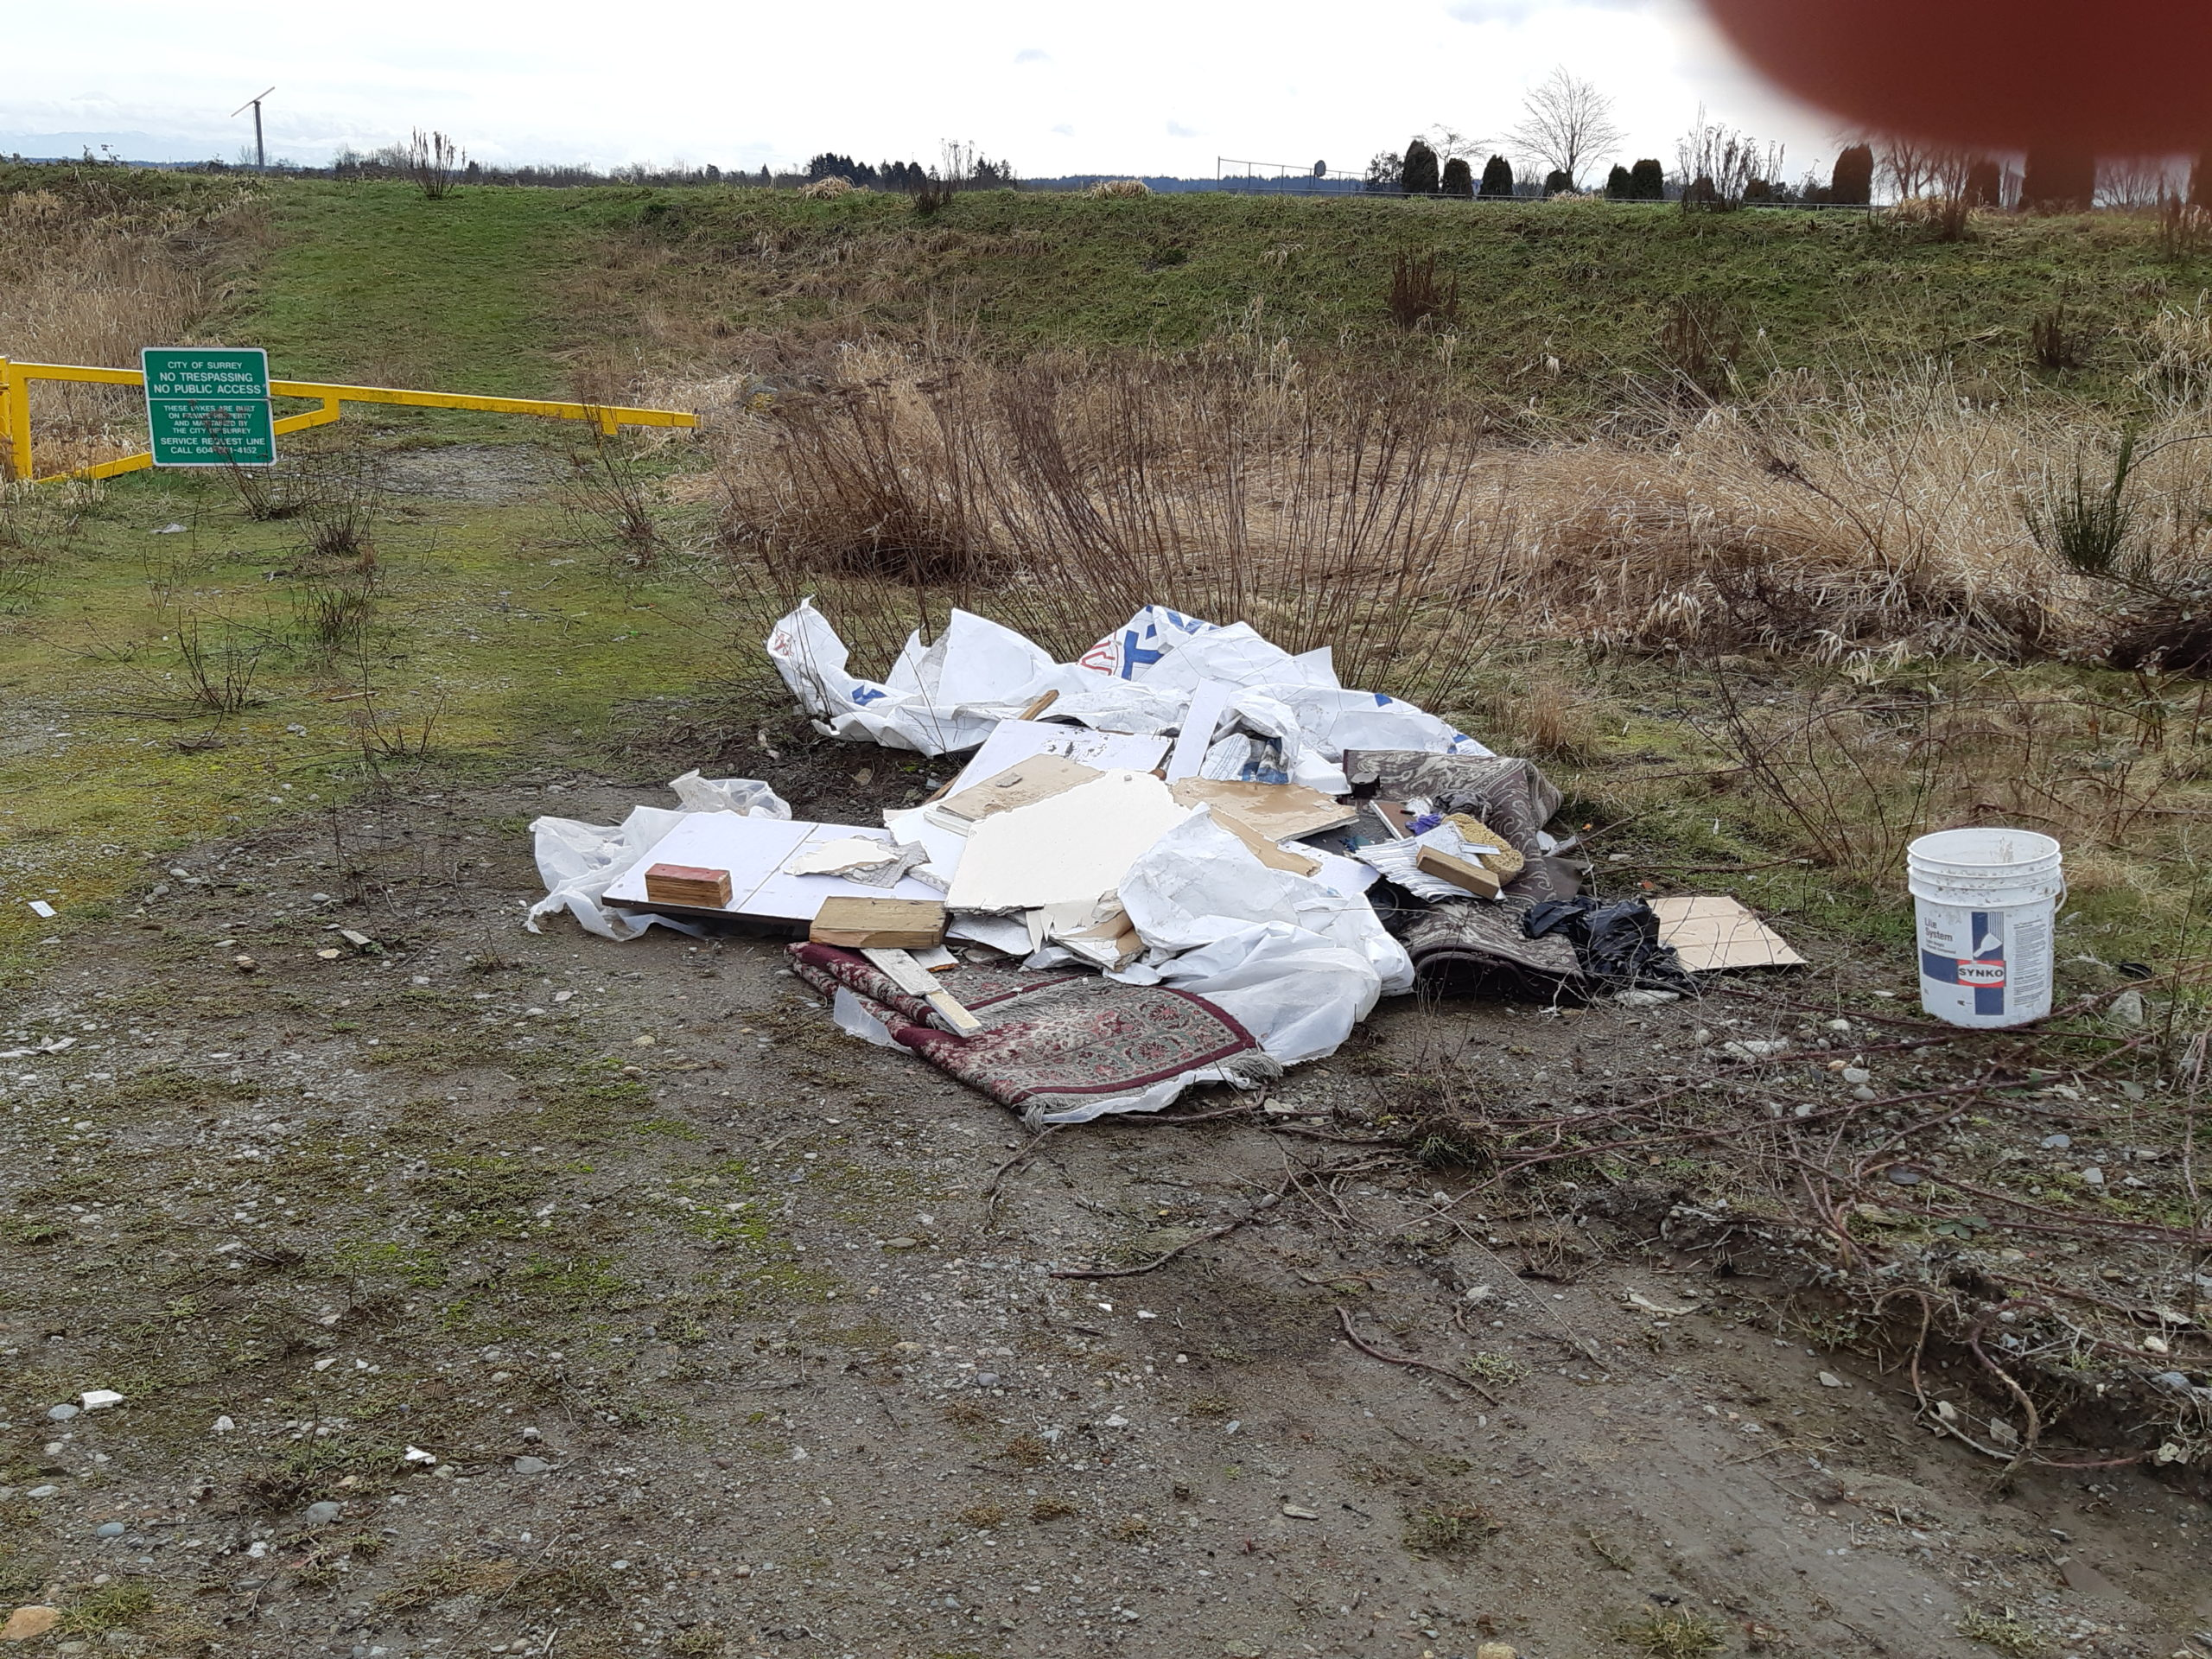 City grapples with illegal dumping